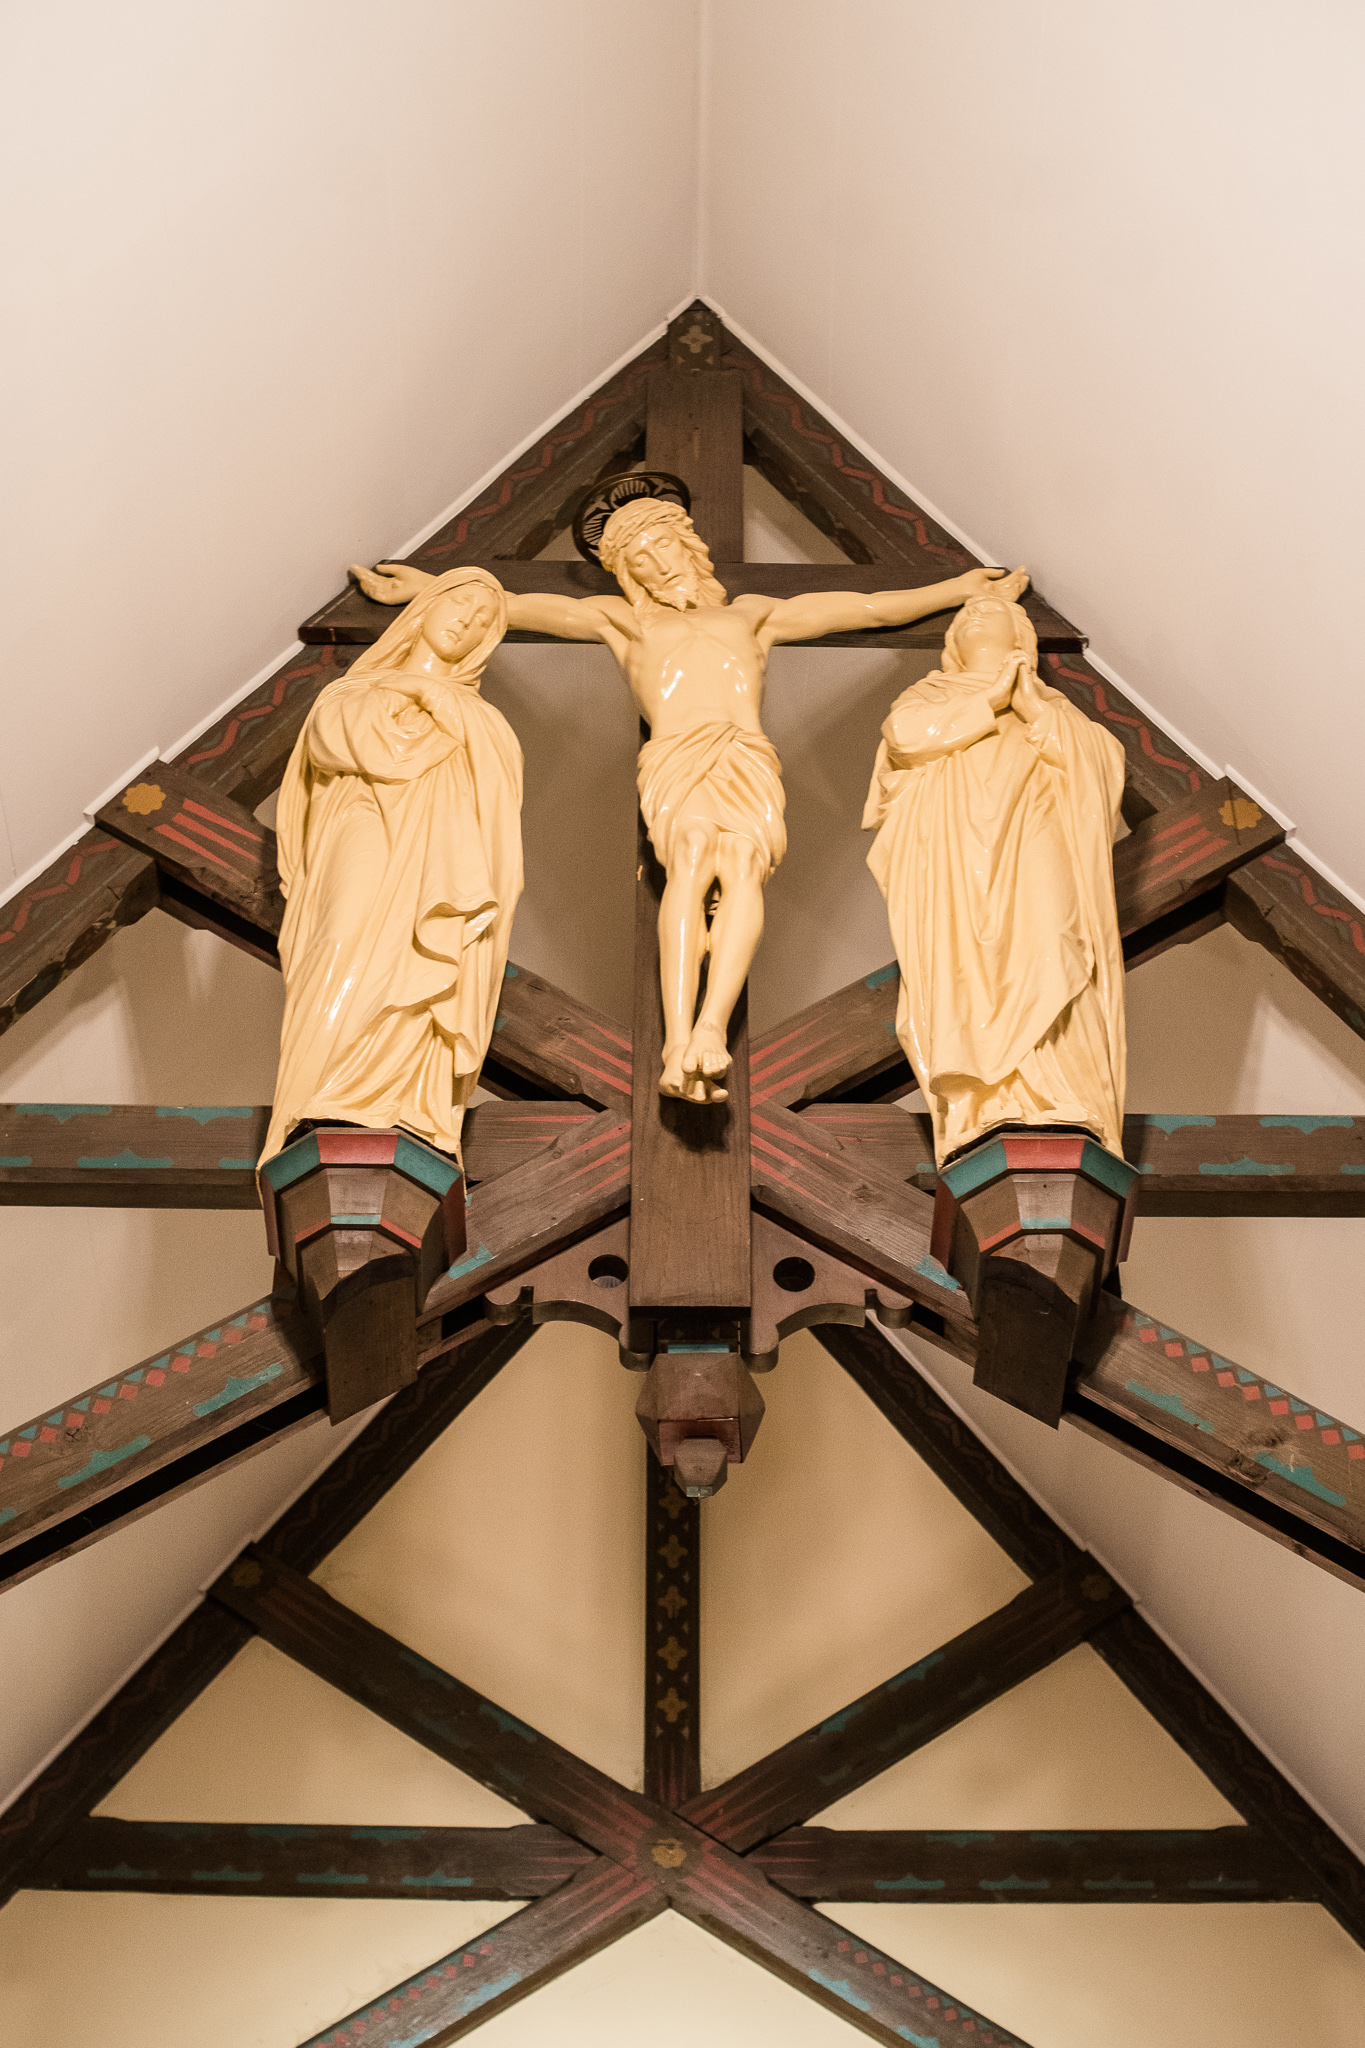 A crucifix and statues displayed in the Chapel of Immaculate Conception in Leesburg, Northern Virginia